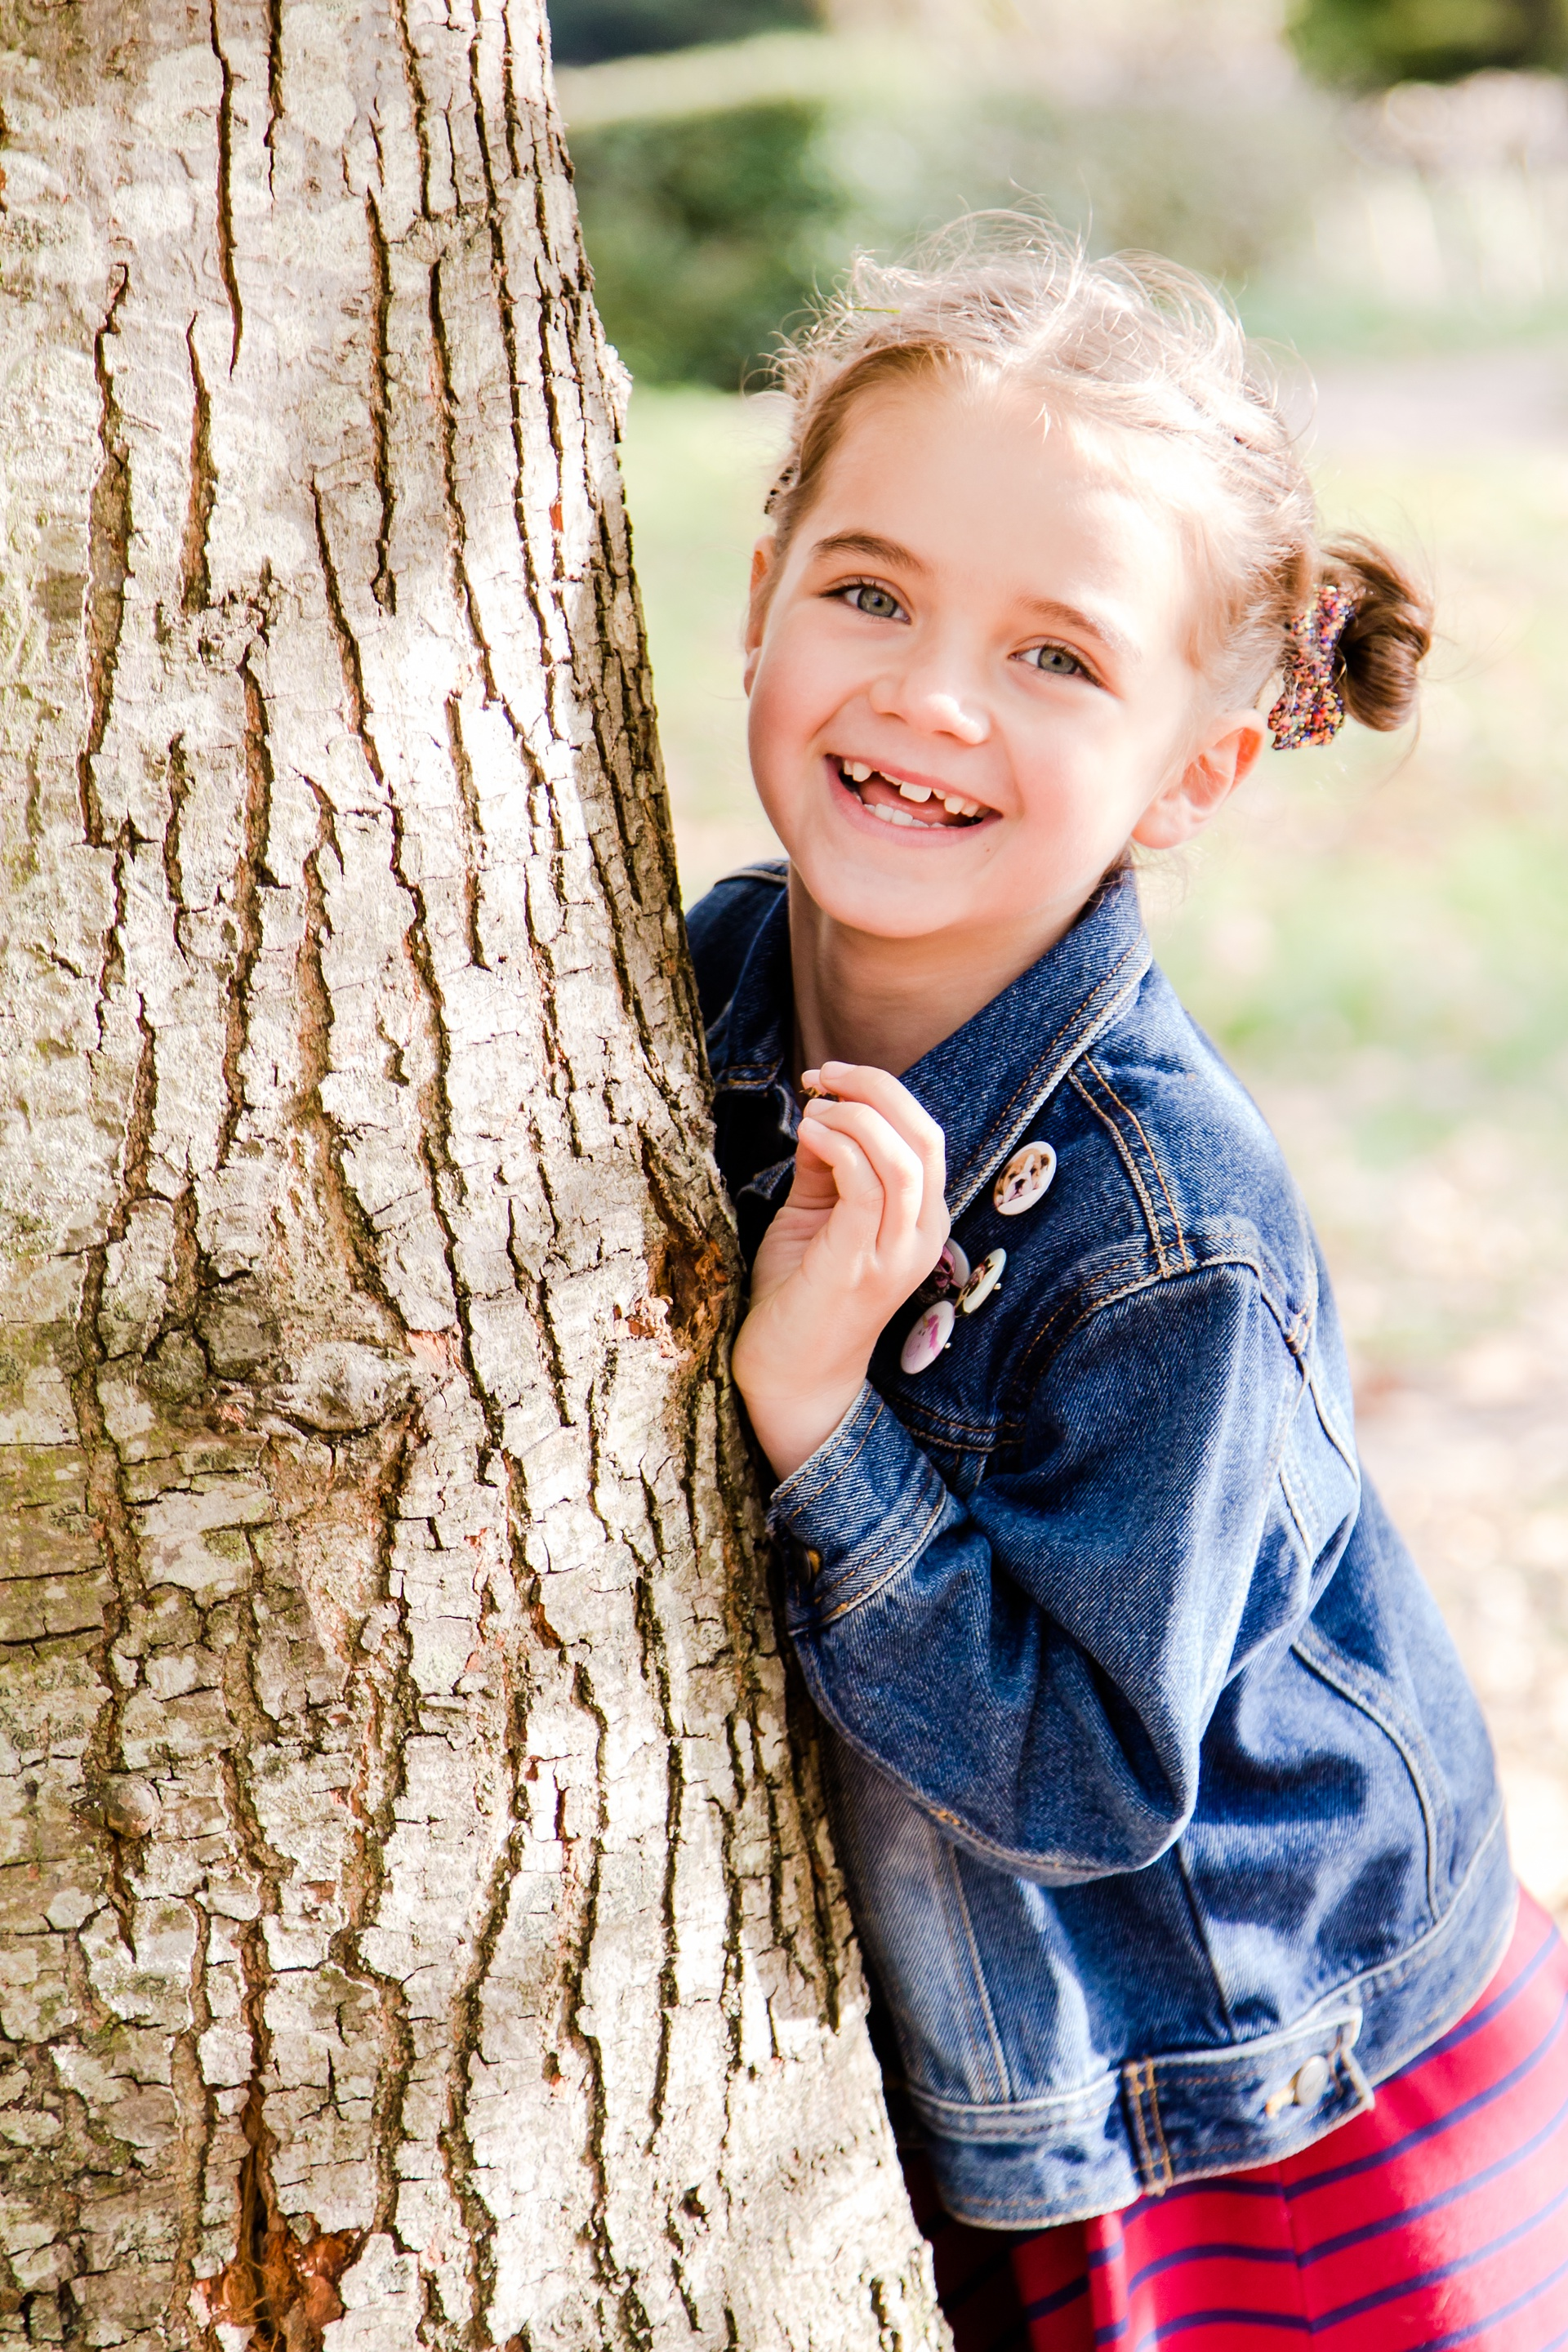 Girl hiding behind tree in park